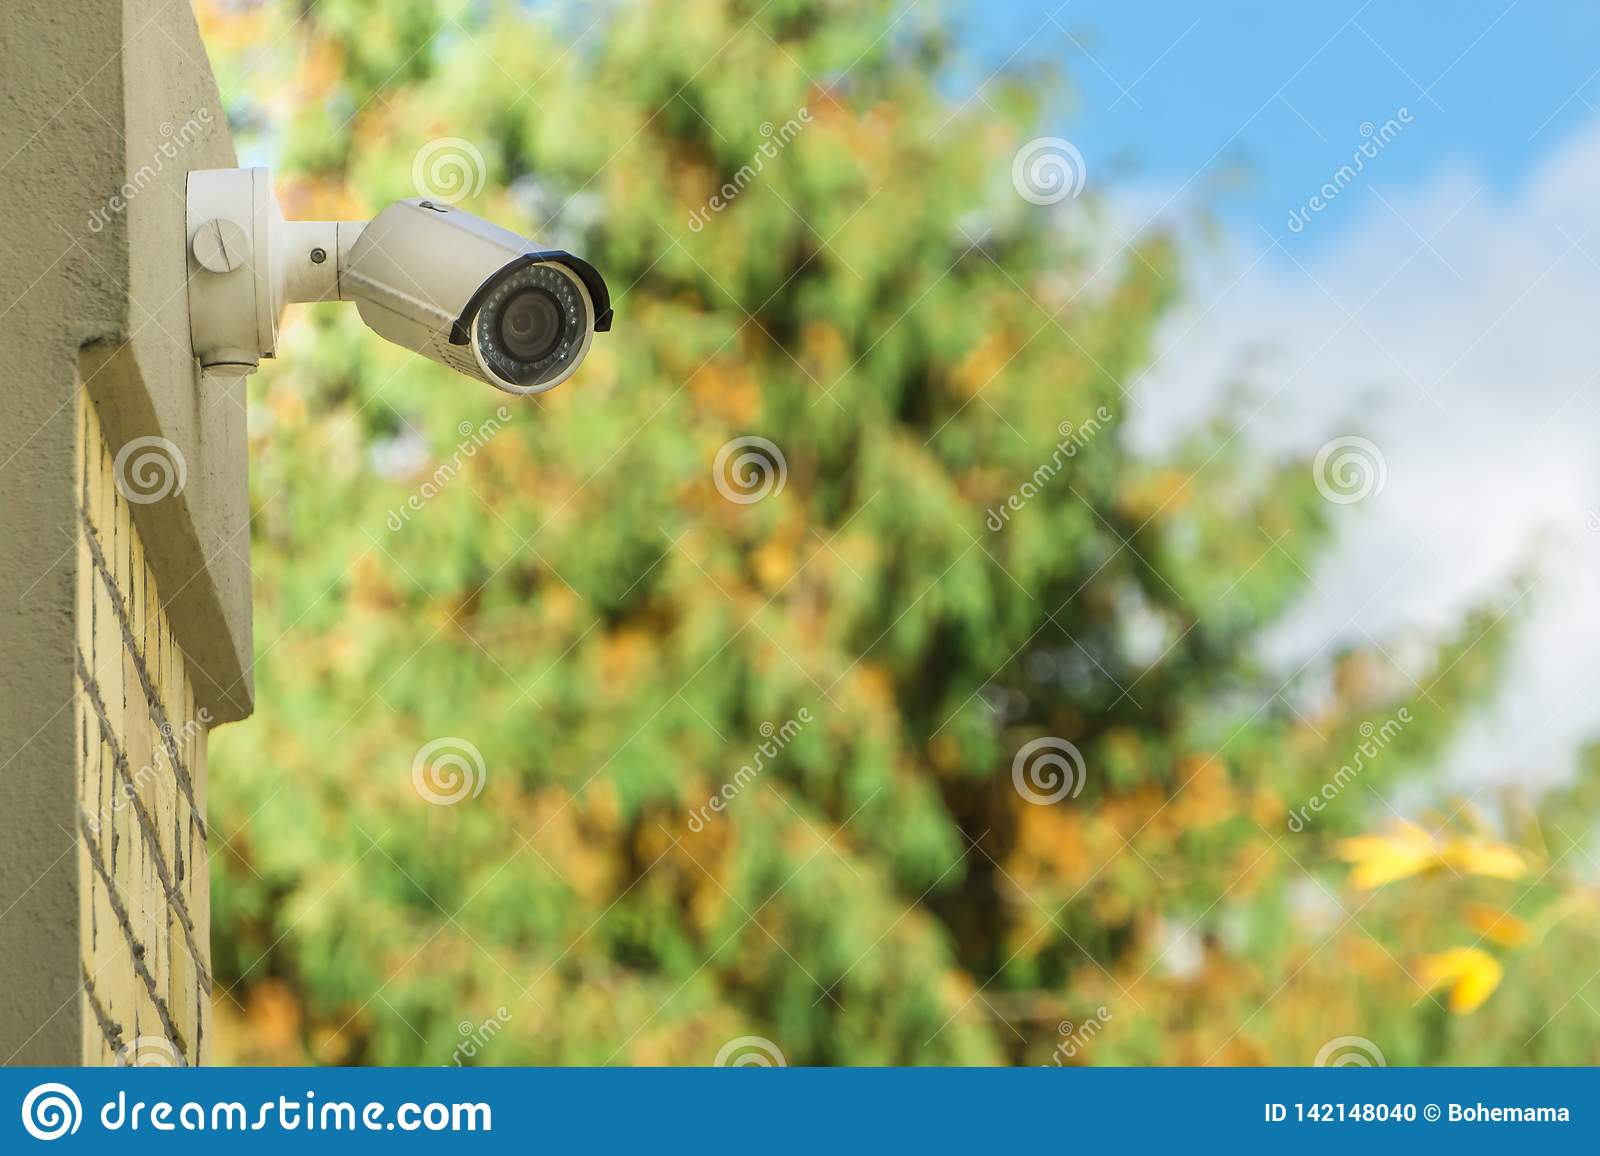 Modern CCTV security camera on building wall, foliage background